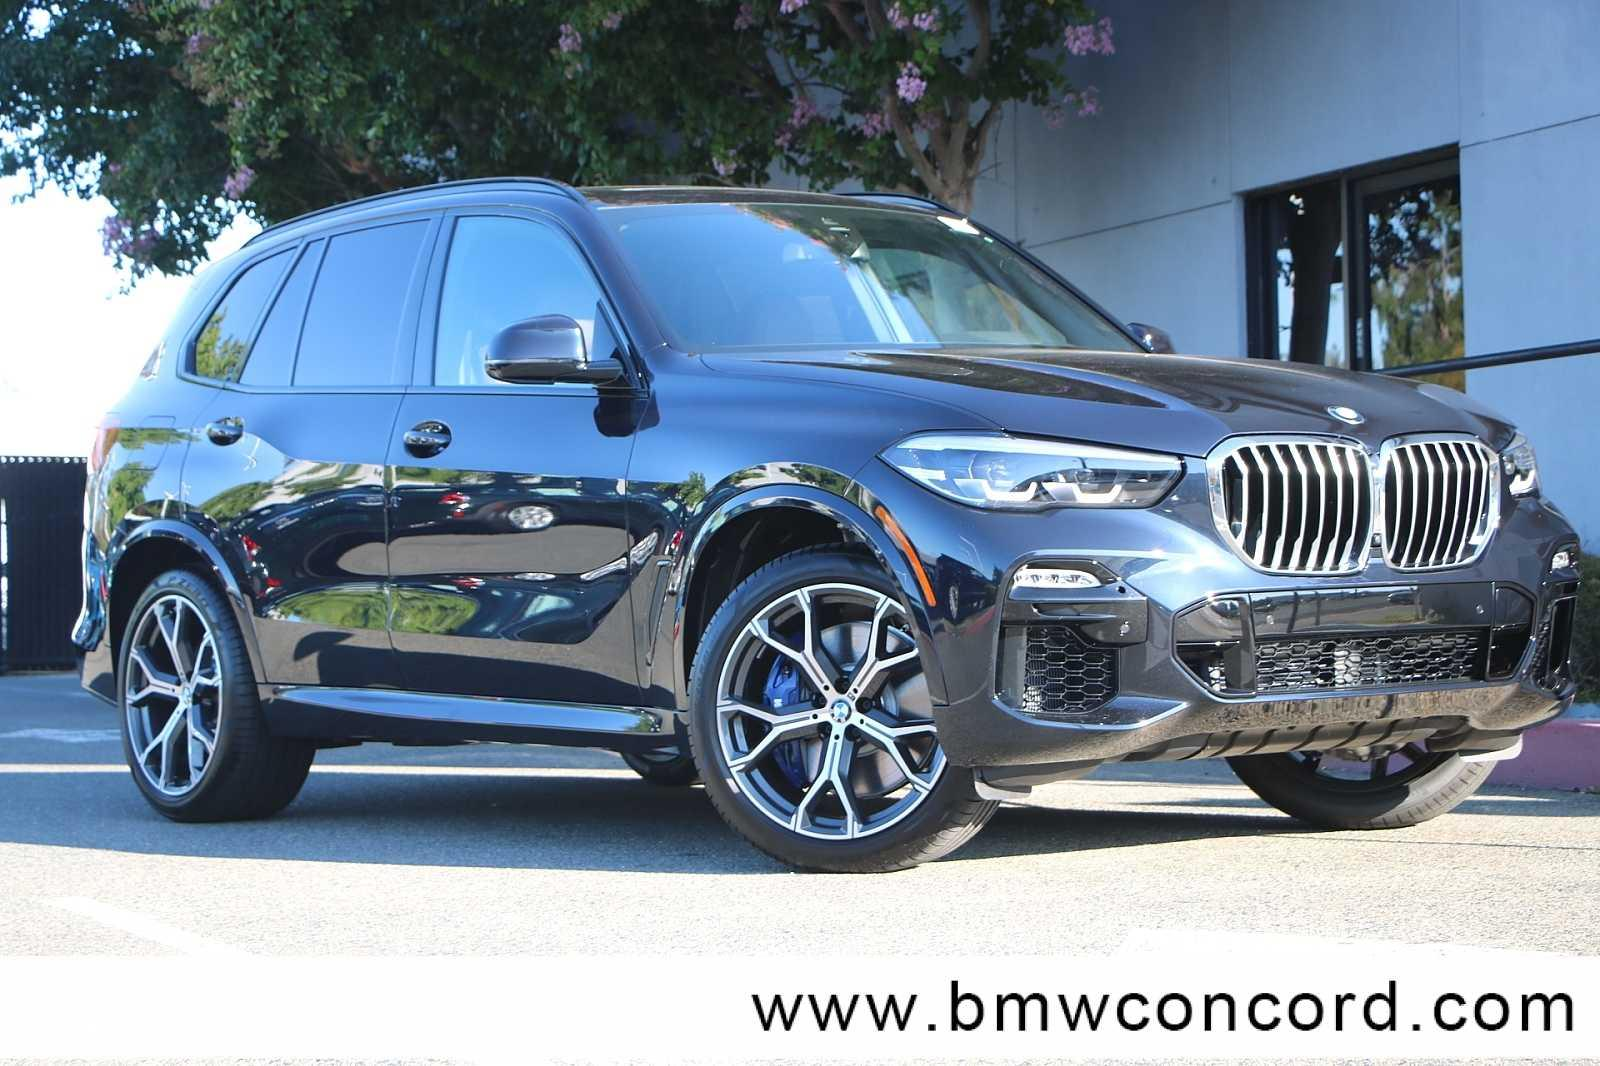 New 2019 Bmw X5 Xdrive40i Sports Activity Vehicle With Navigation Awd